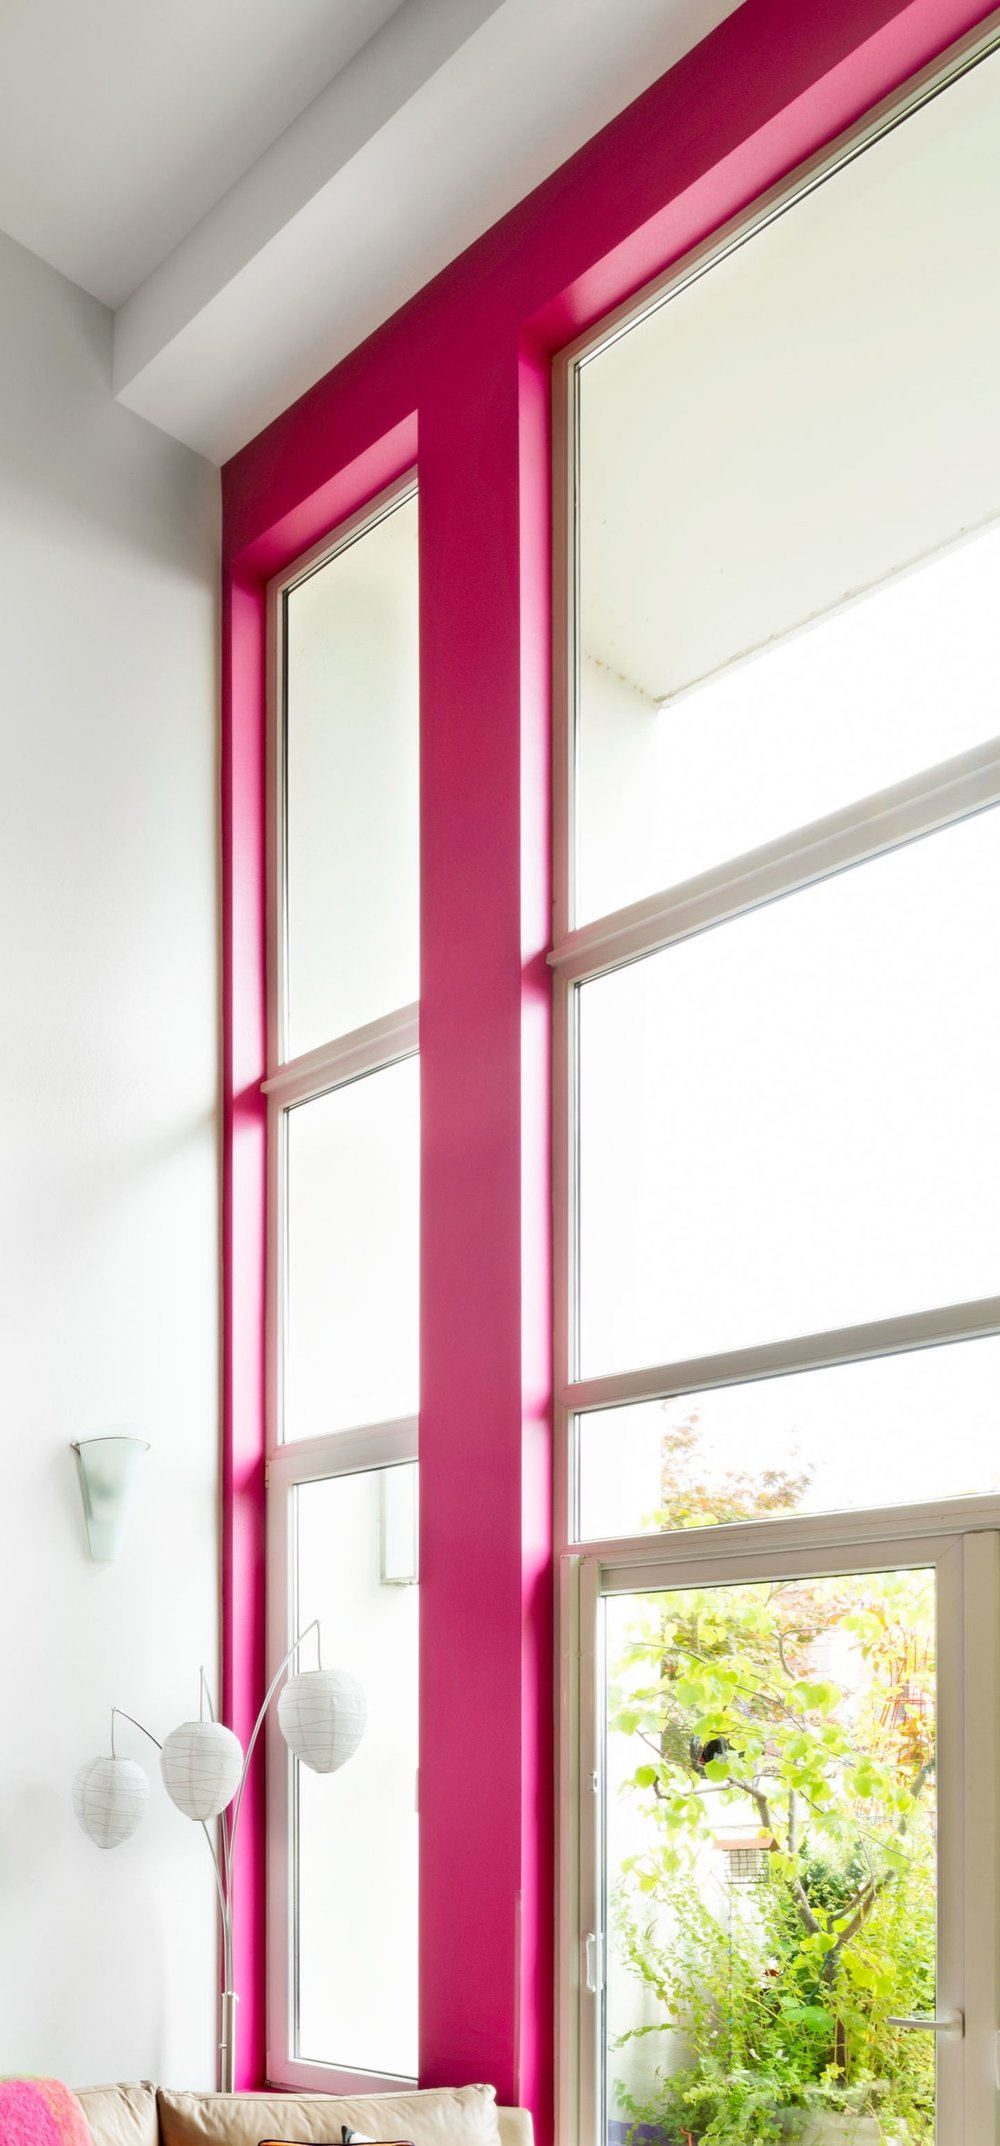 Floor to ceiling feature wall showcases the client's love of color.